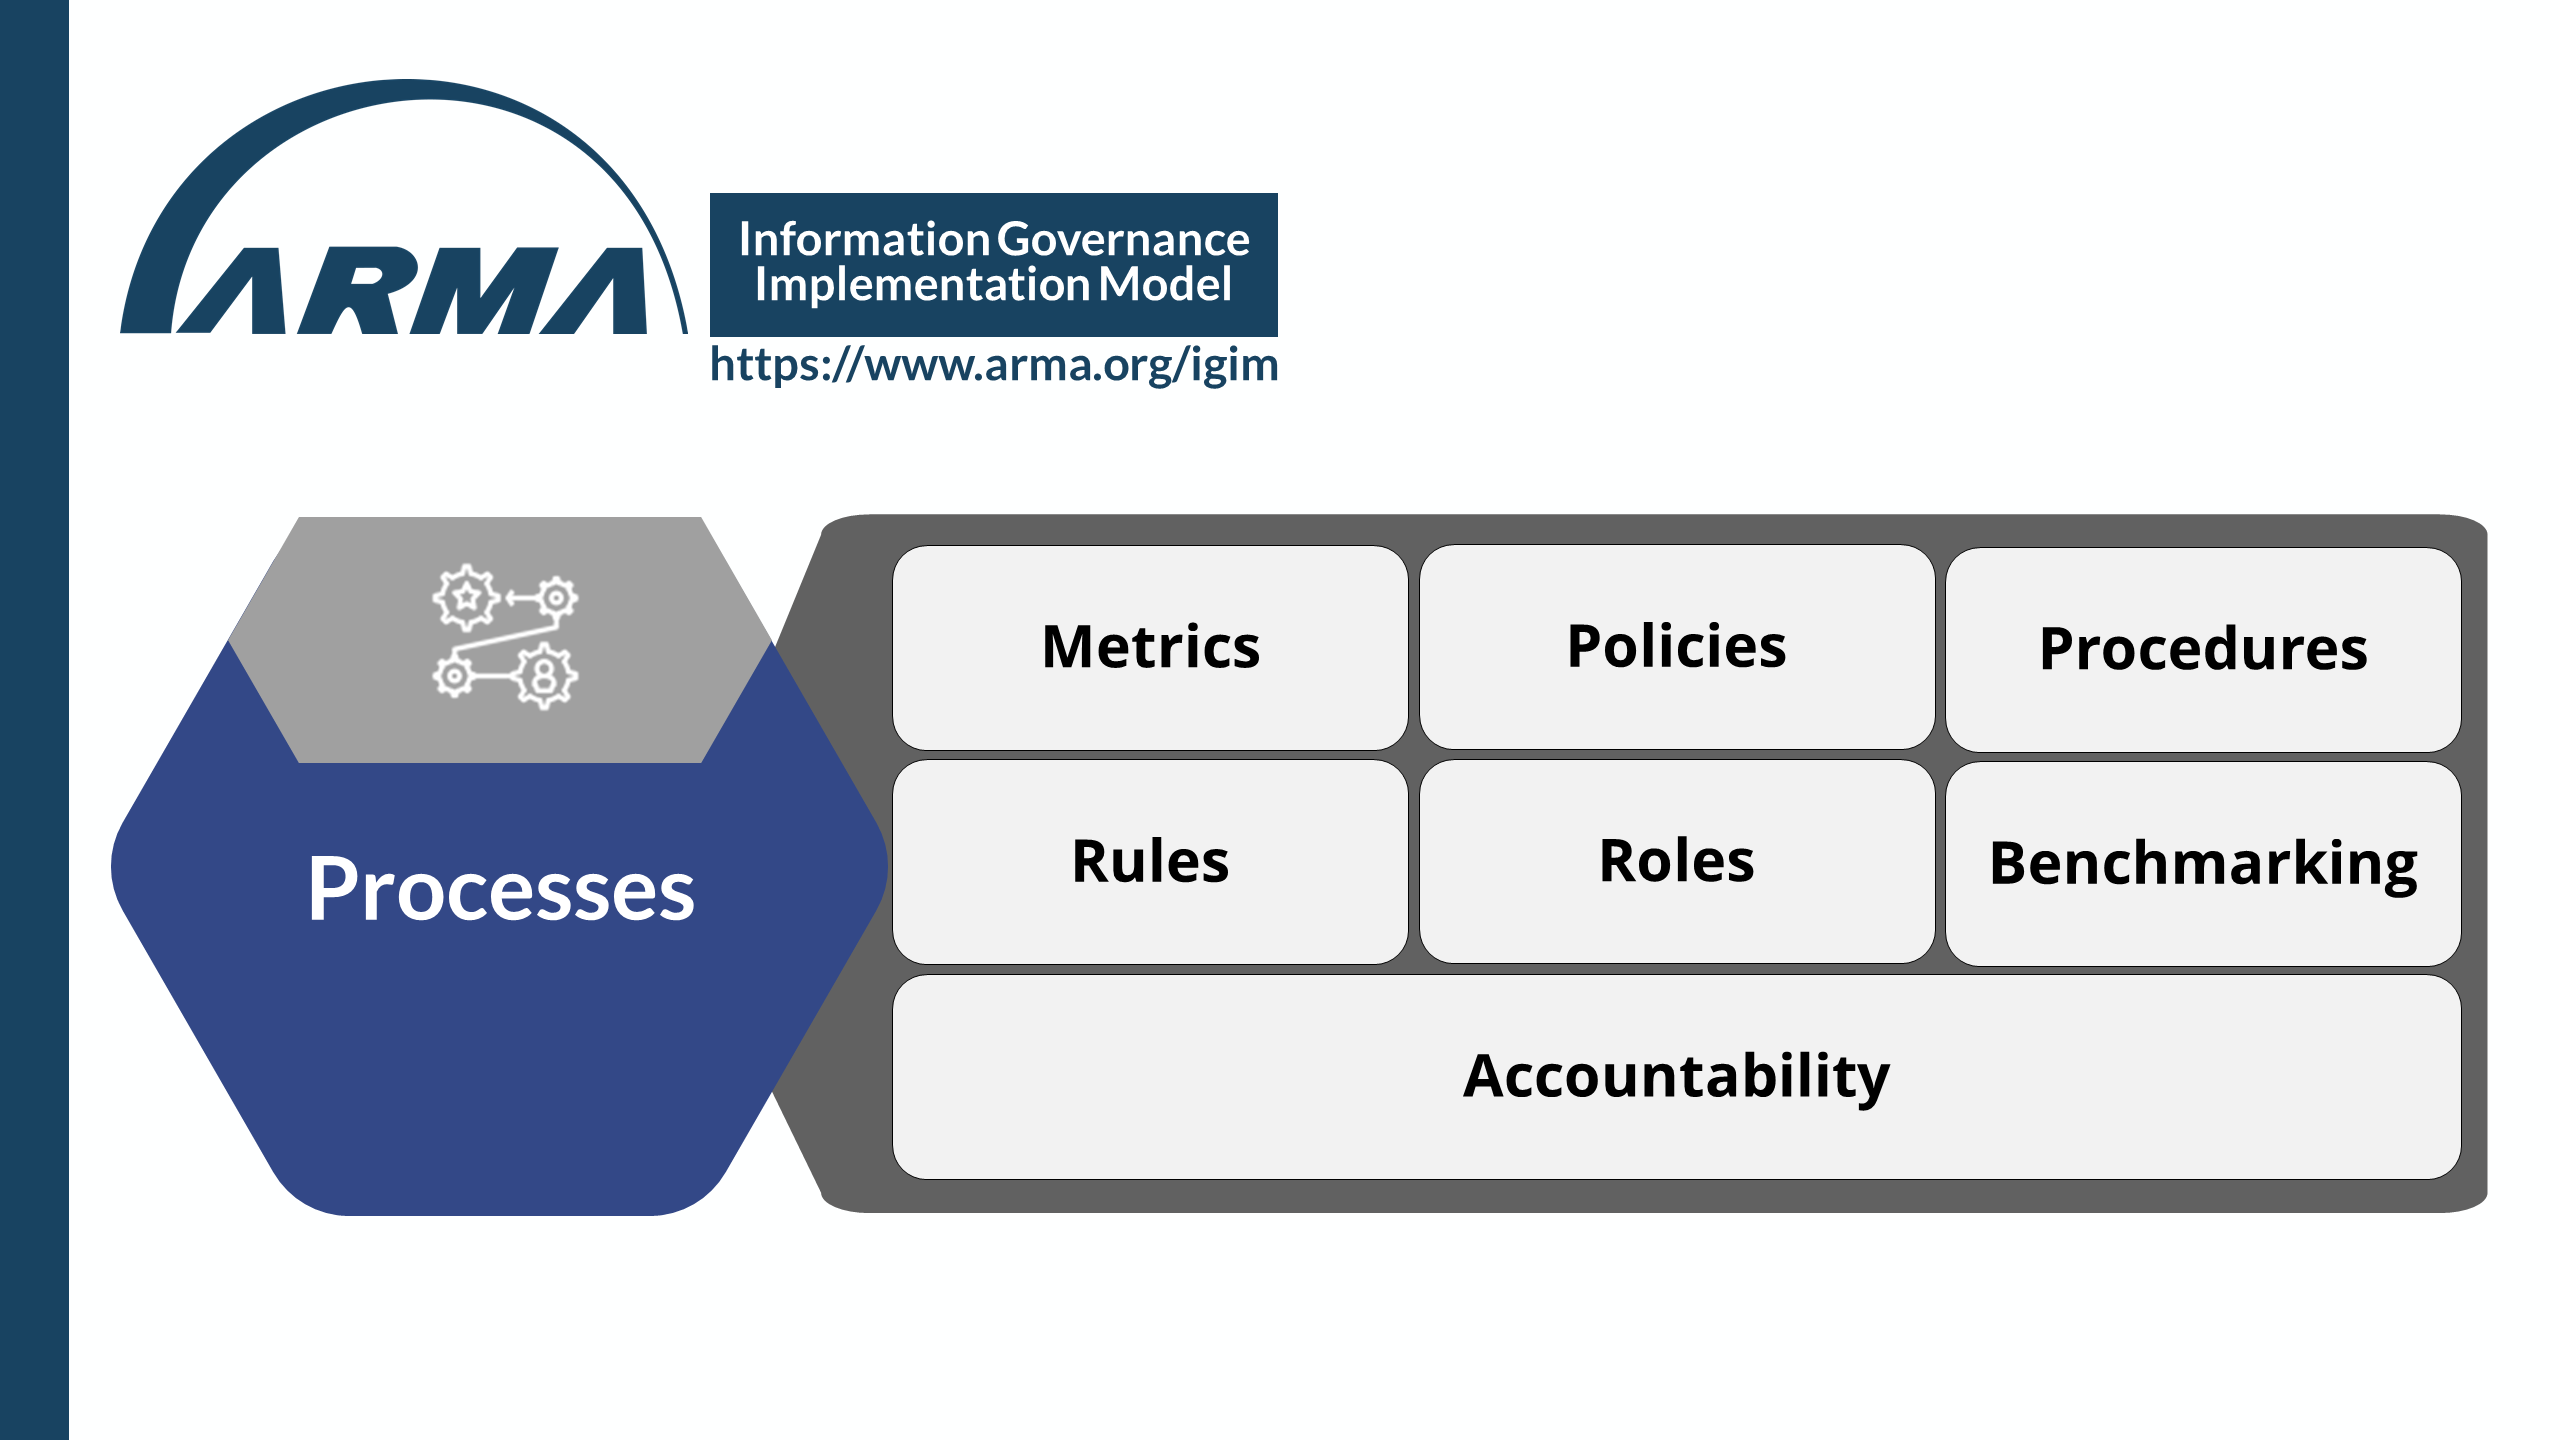 Information Governance Implementation Model - Processes